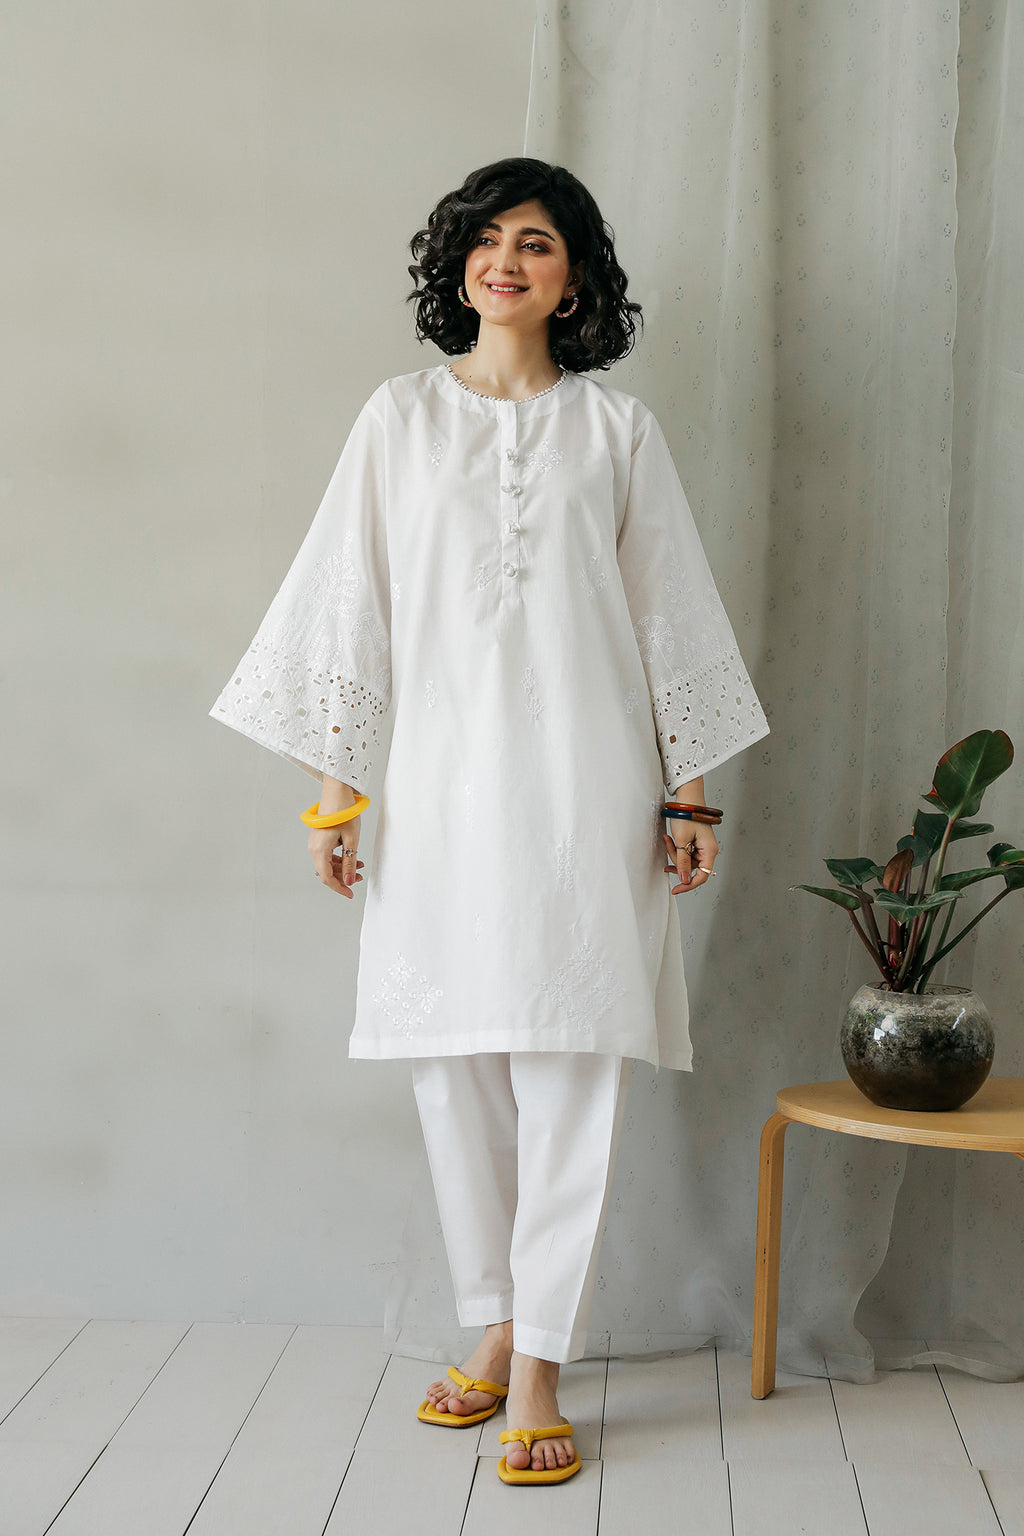 EMBROIDERED SHIRT (WTC111100) - Ethnic by Outfitters